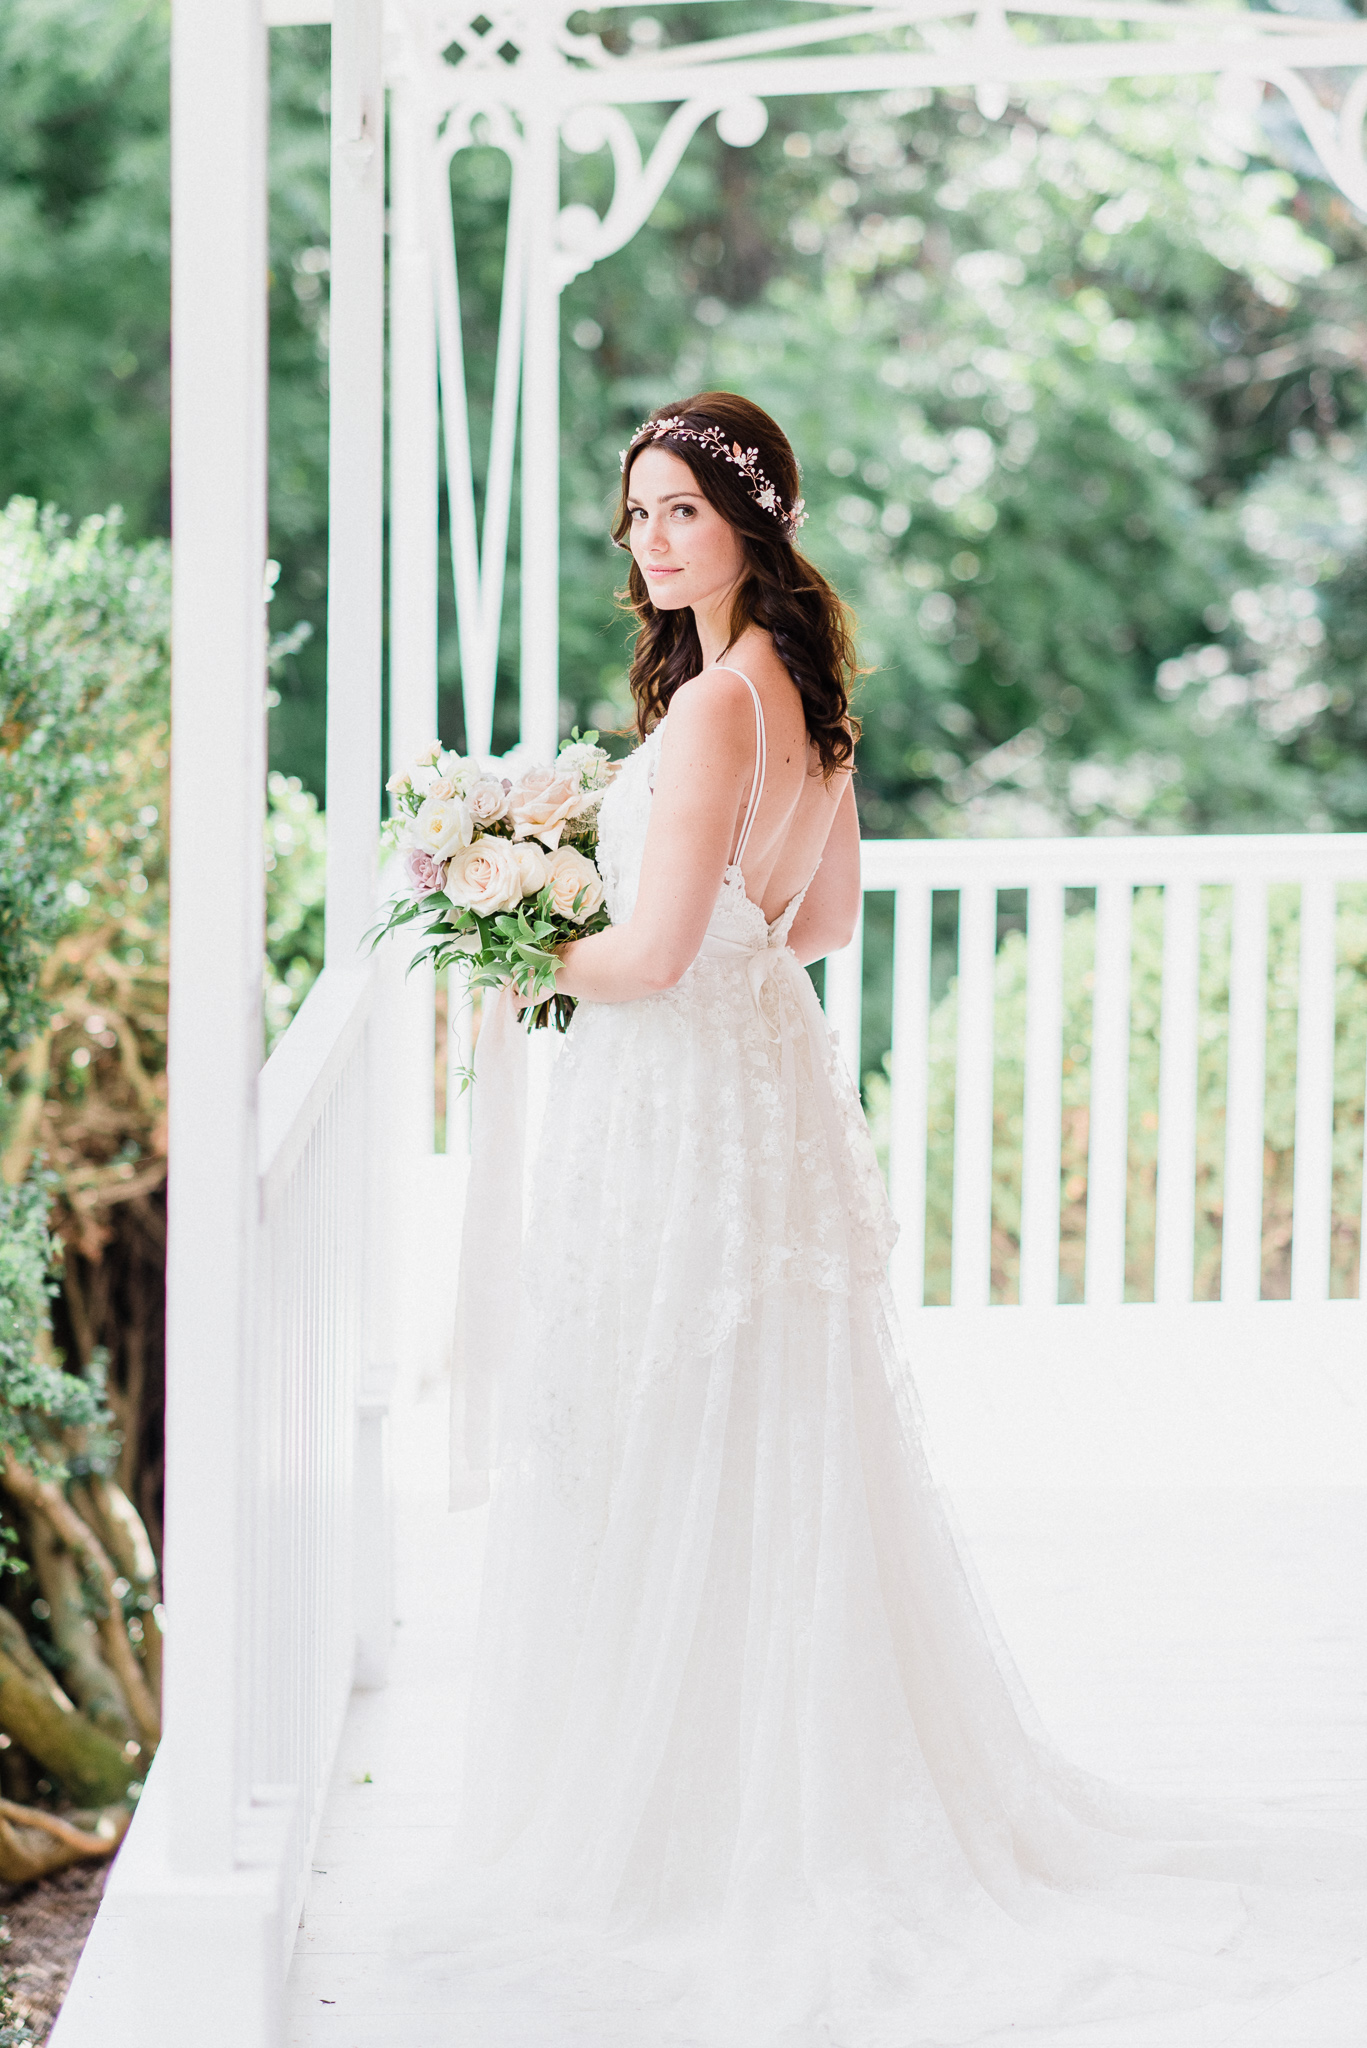 Elodie gown by Anais Anette, photographed by Jenn Kavanagh Photography